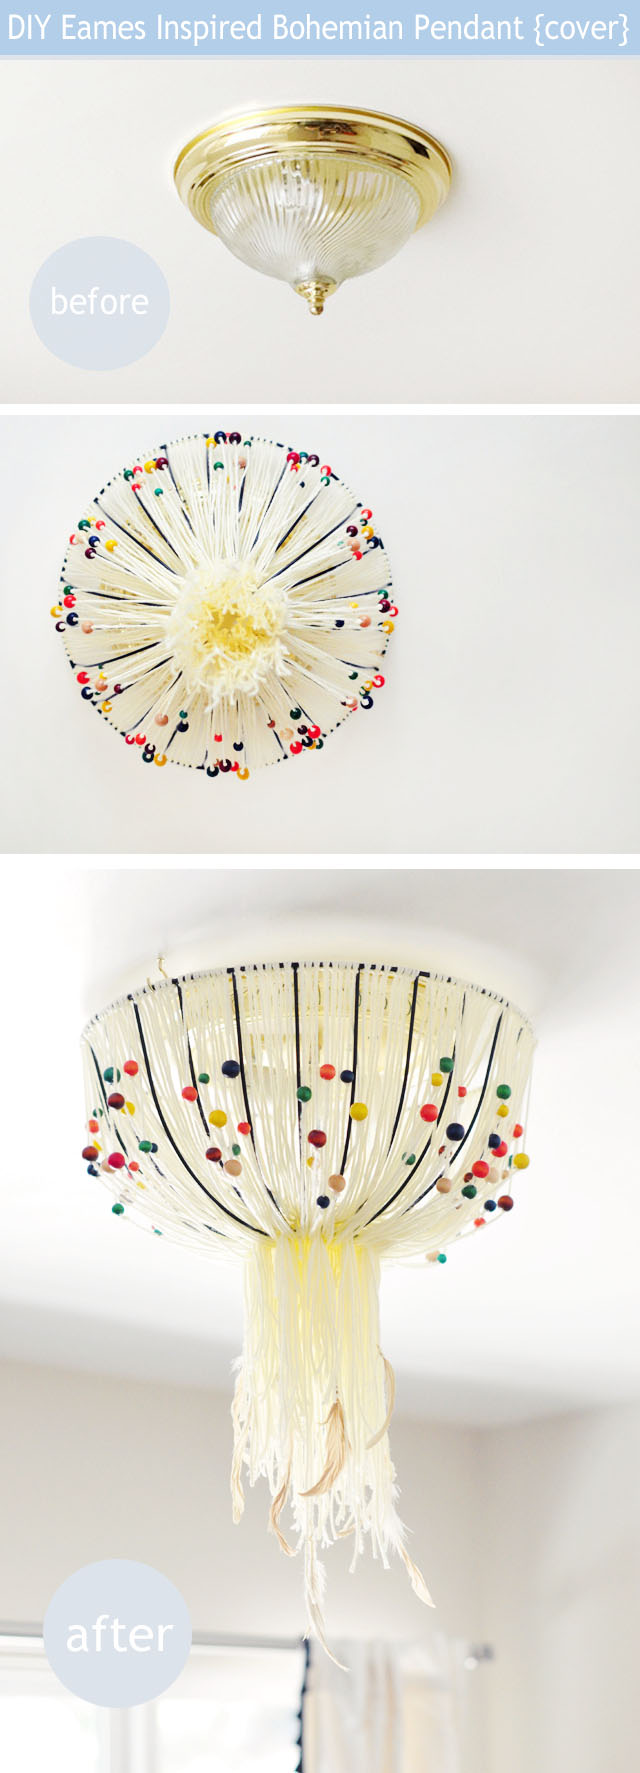 DIY ceiling light fixture cover-eames bohemian beaded feathered lamp